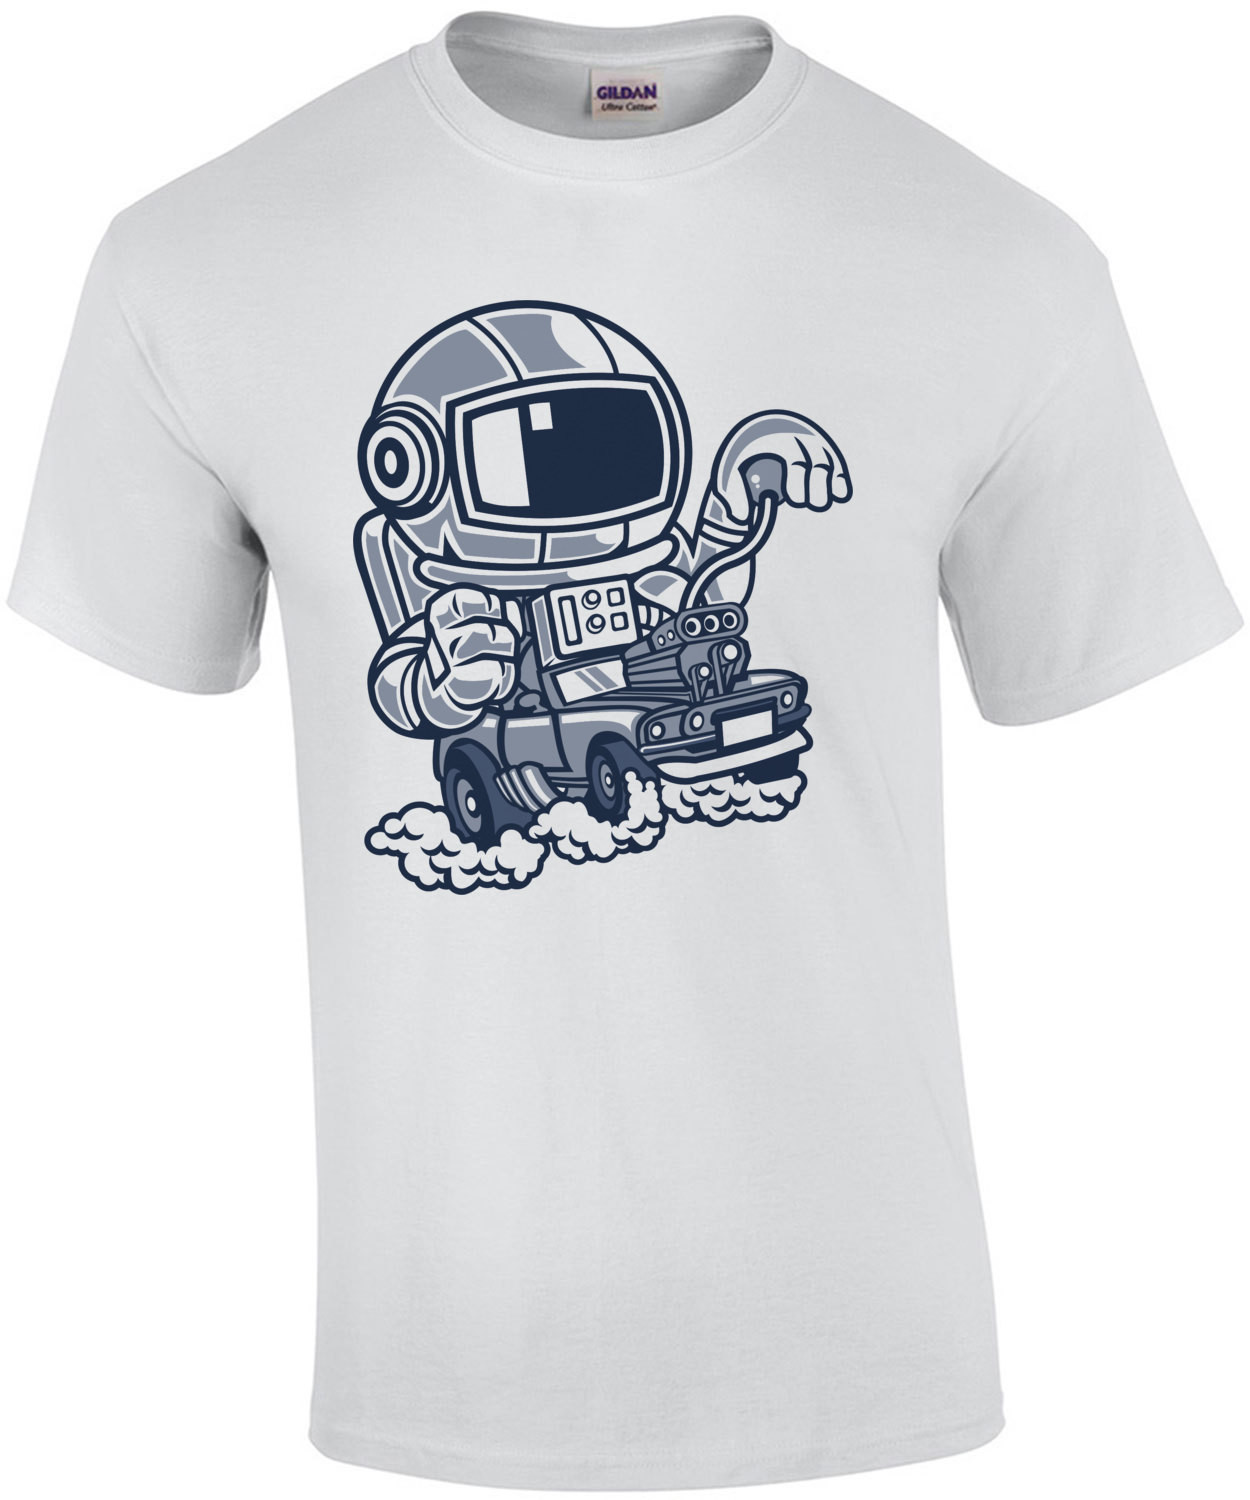 Astronaut Space Racer T-Shirt